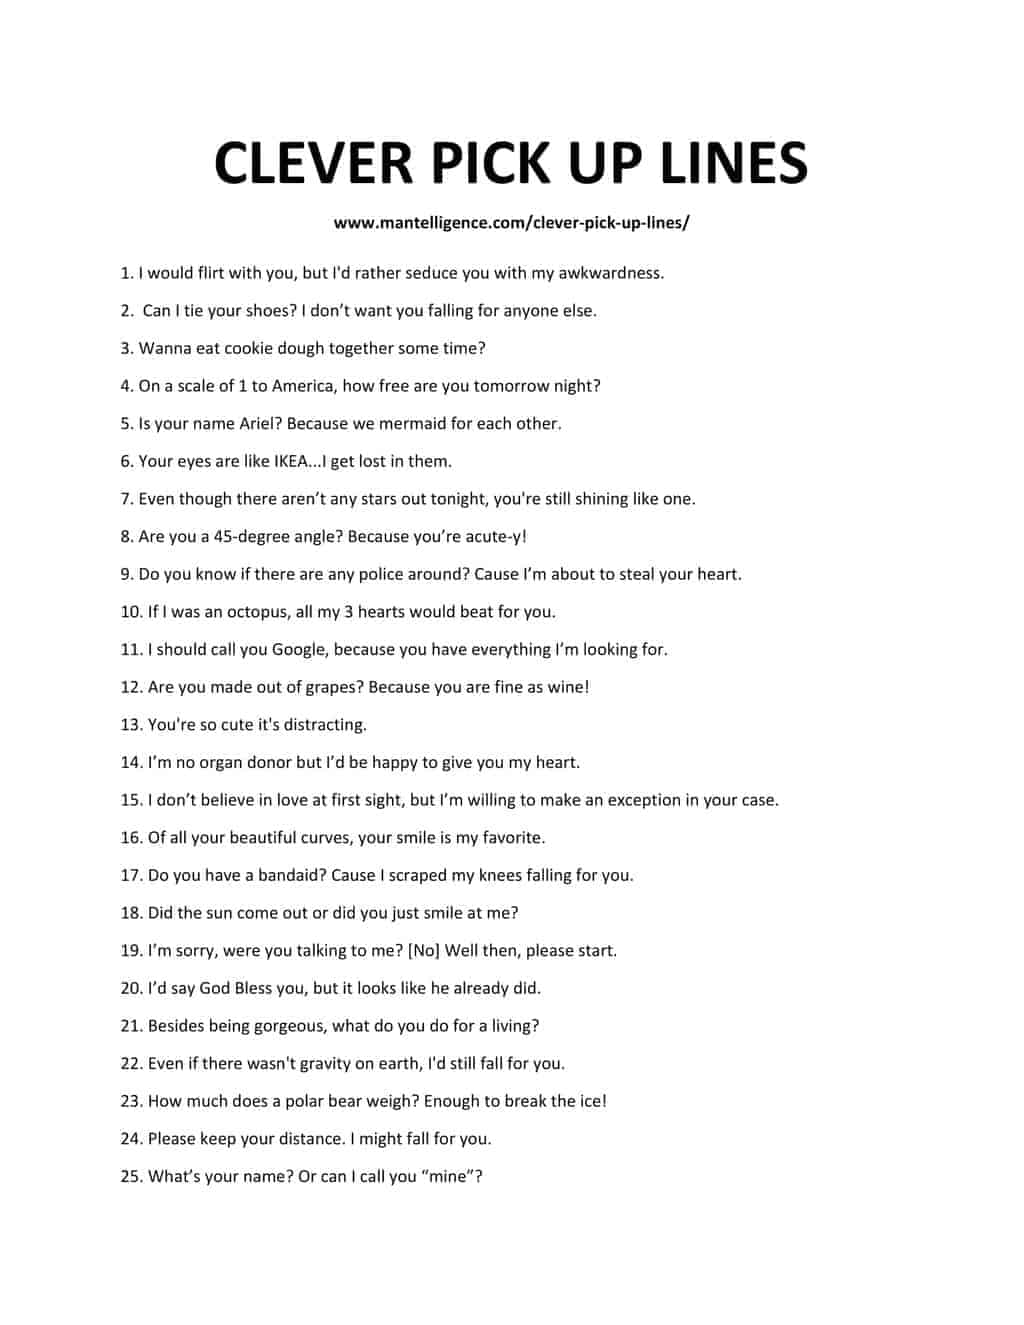 Downloadable and Printable List of Clever Pick Up Lines